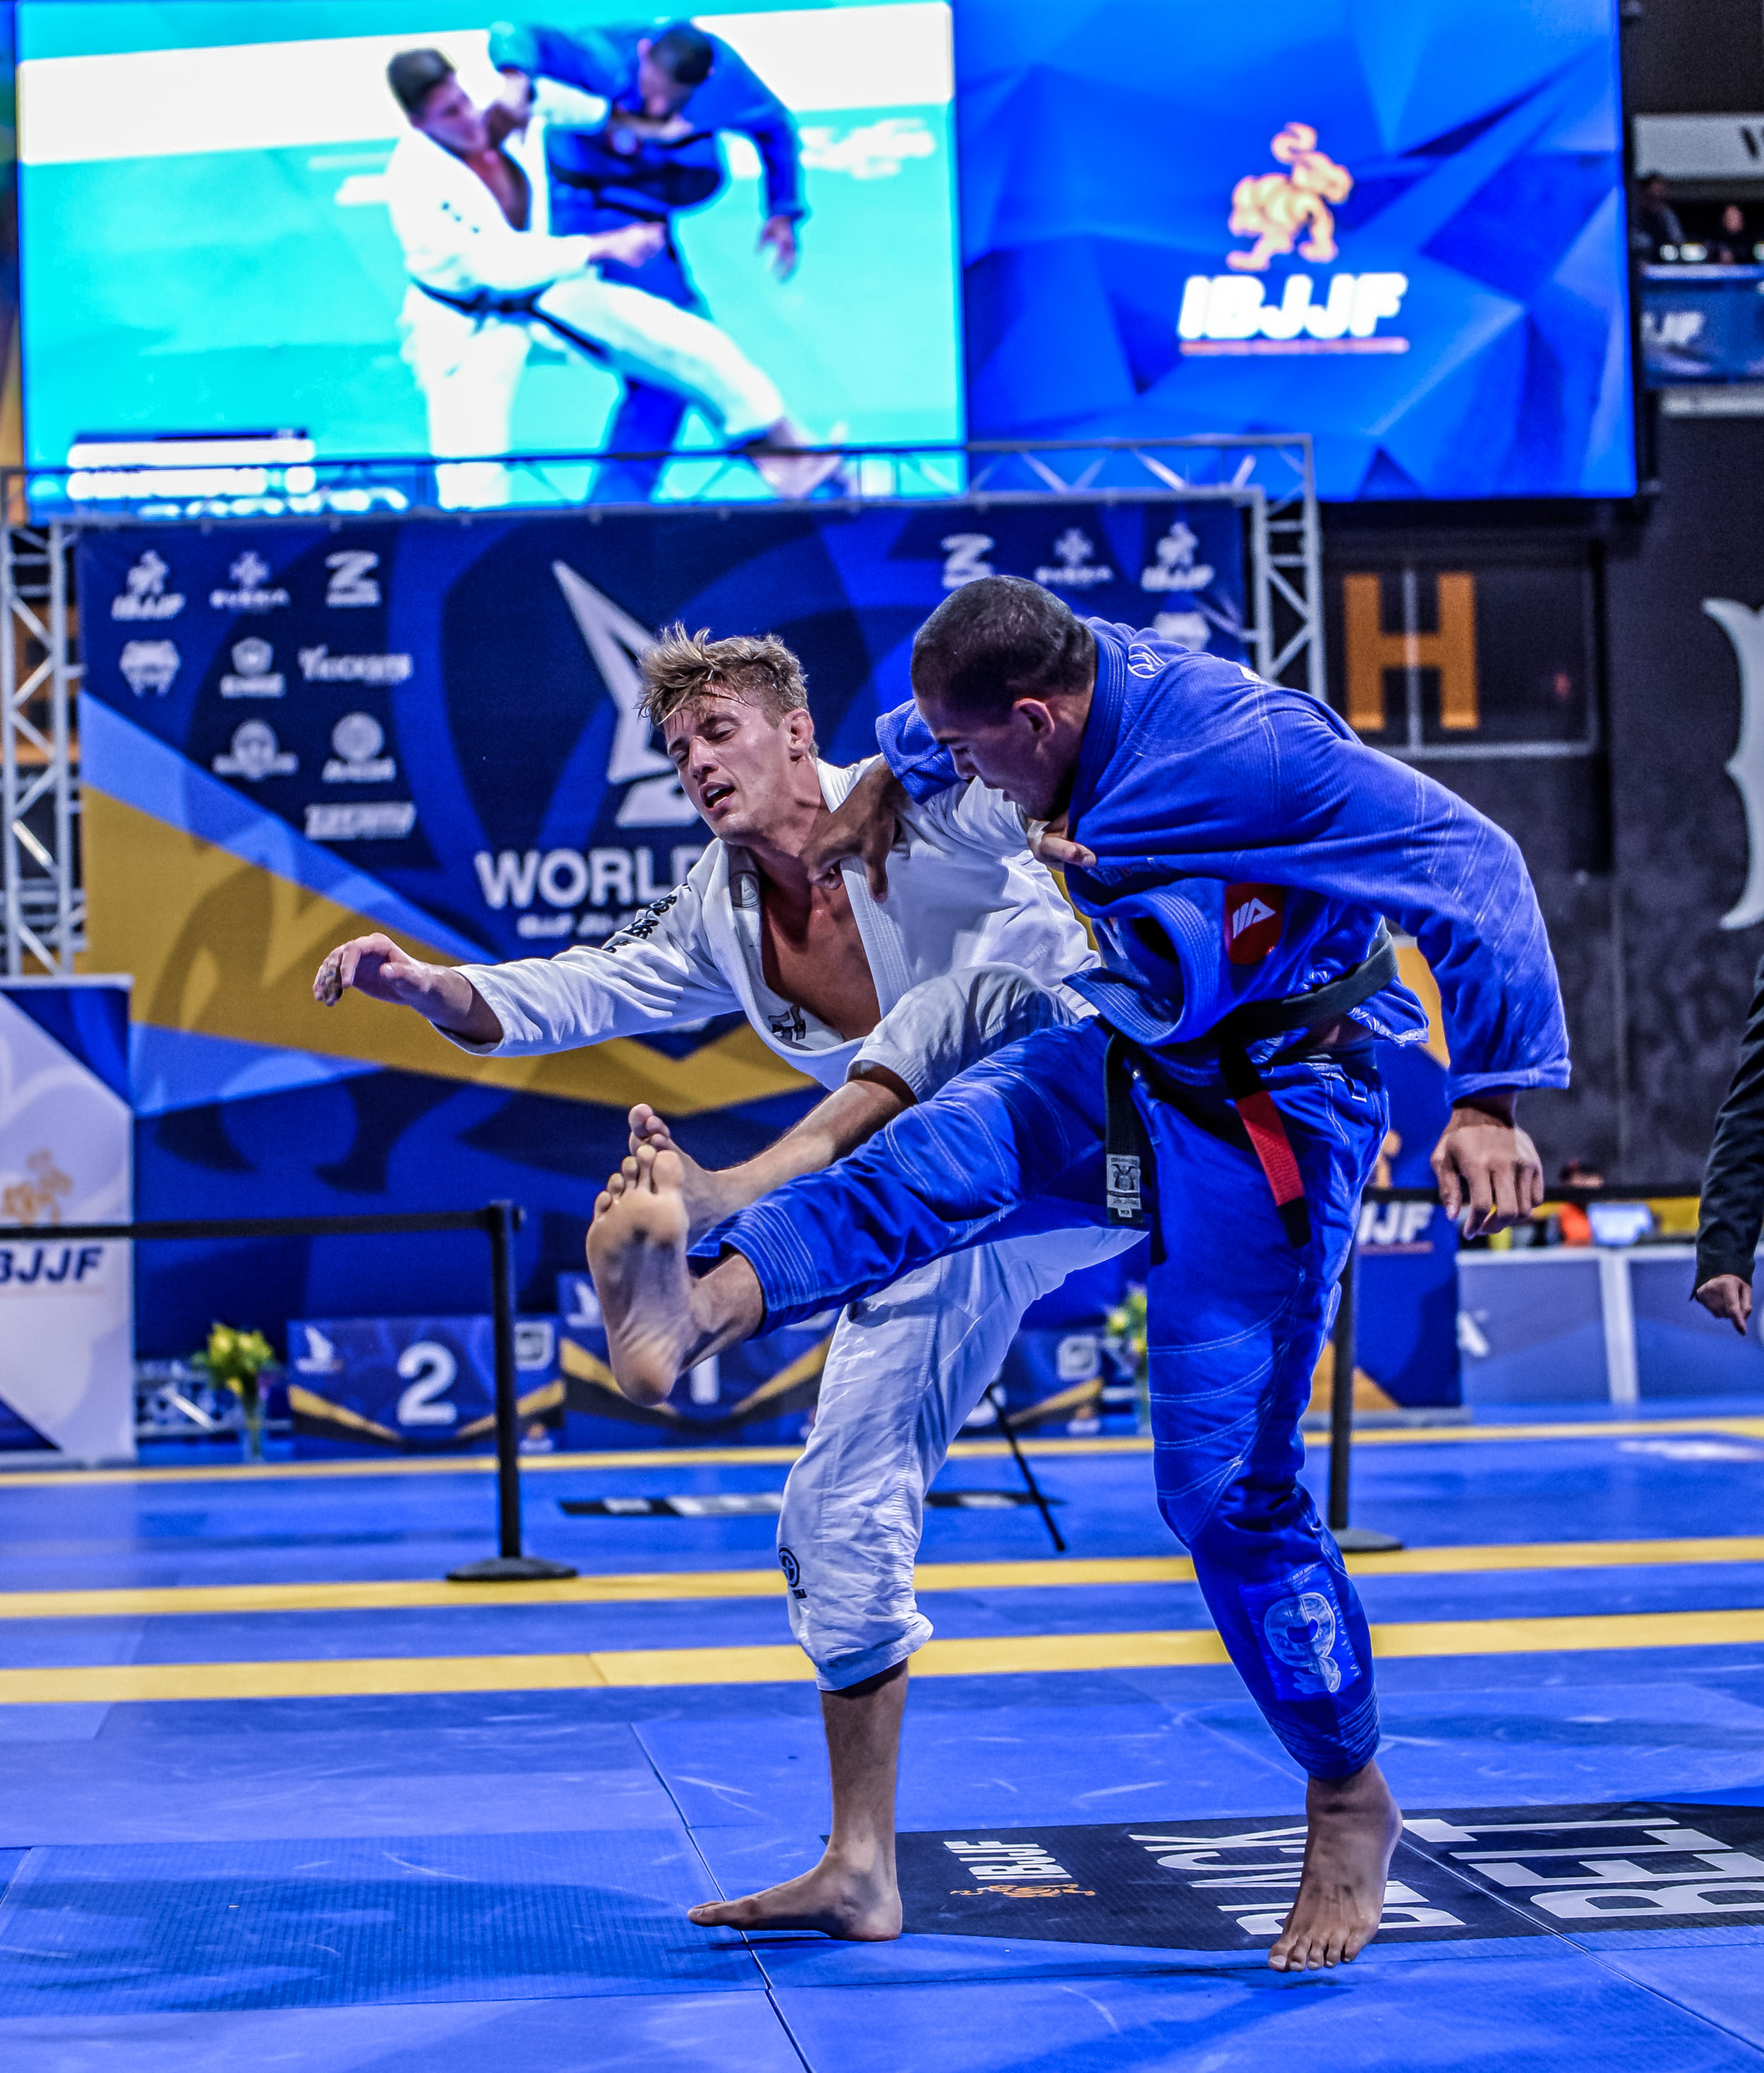 Nicholas Meregeli and Mahamed Aly in a savage Super Heavy Finals match. Meregali was the returning Heavy Weight Champion and moved up to Super Heavy for this year's Worlds. Mahamed Aly would win the Super Heavy Gold here and become one of two Team Lloyd Irwin Black Belt World Champion at Worlds 2018.